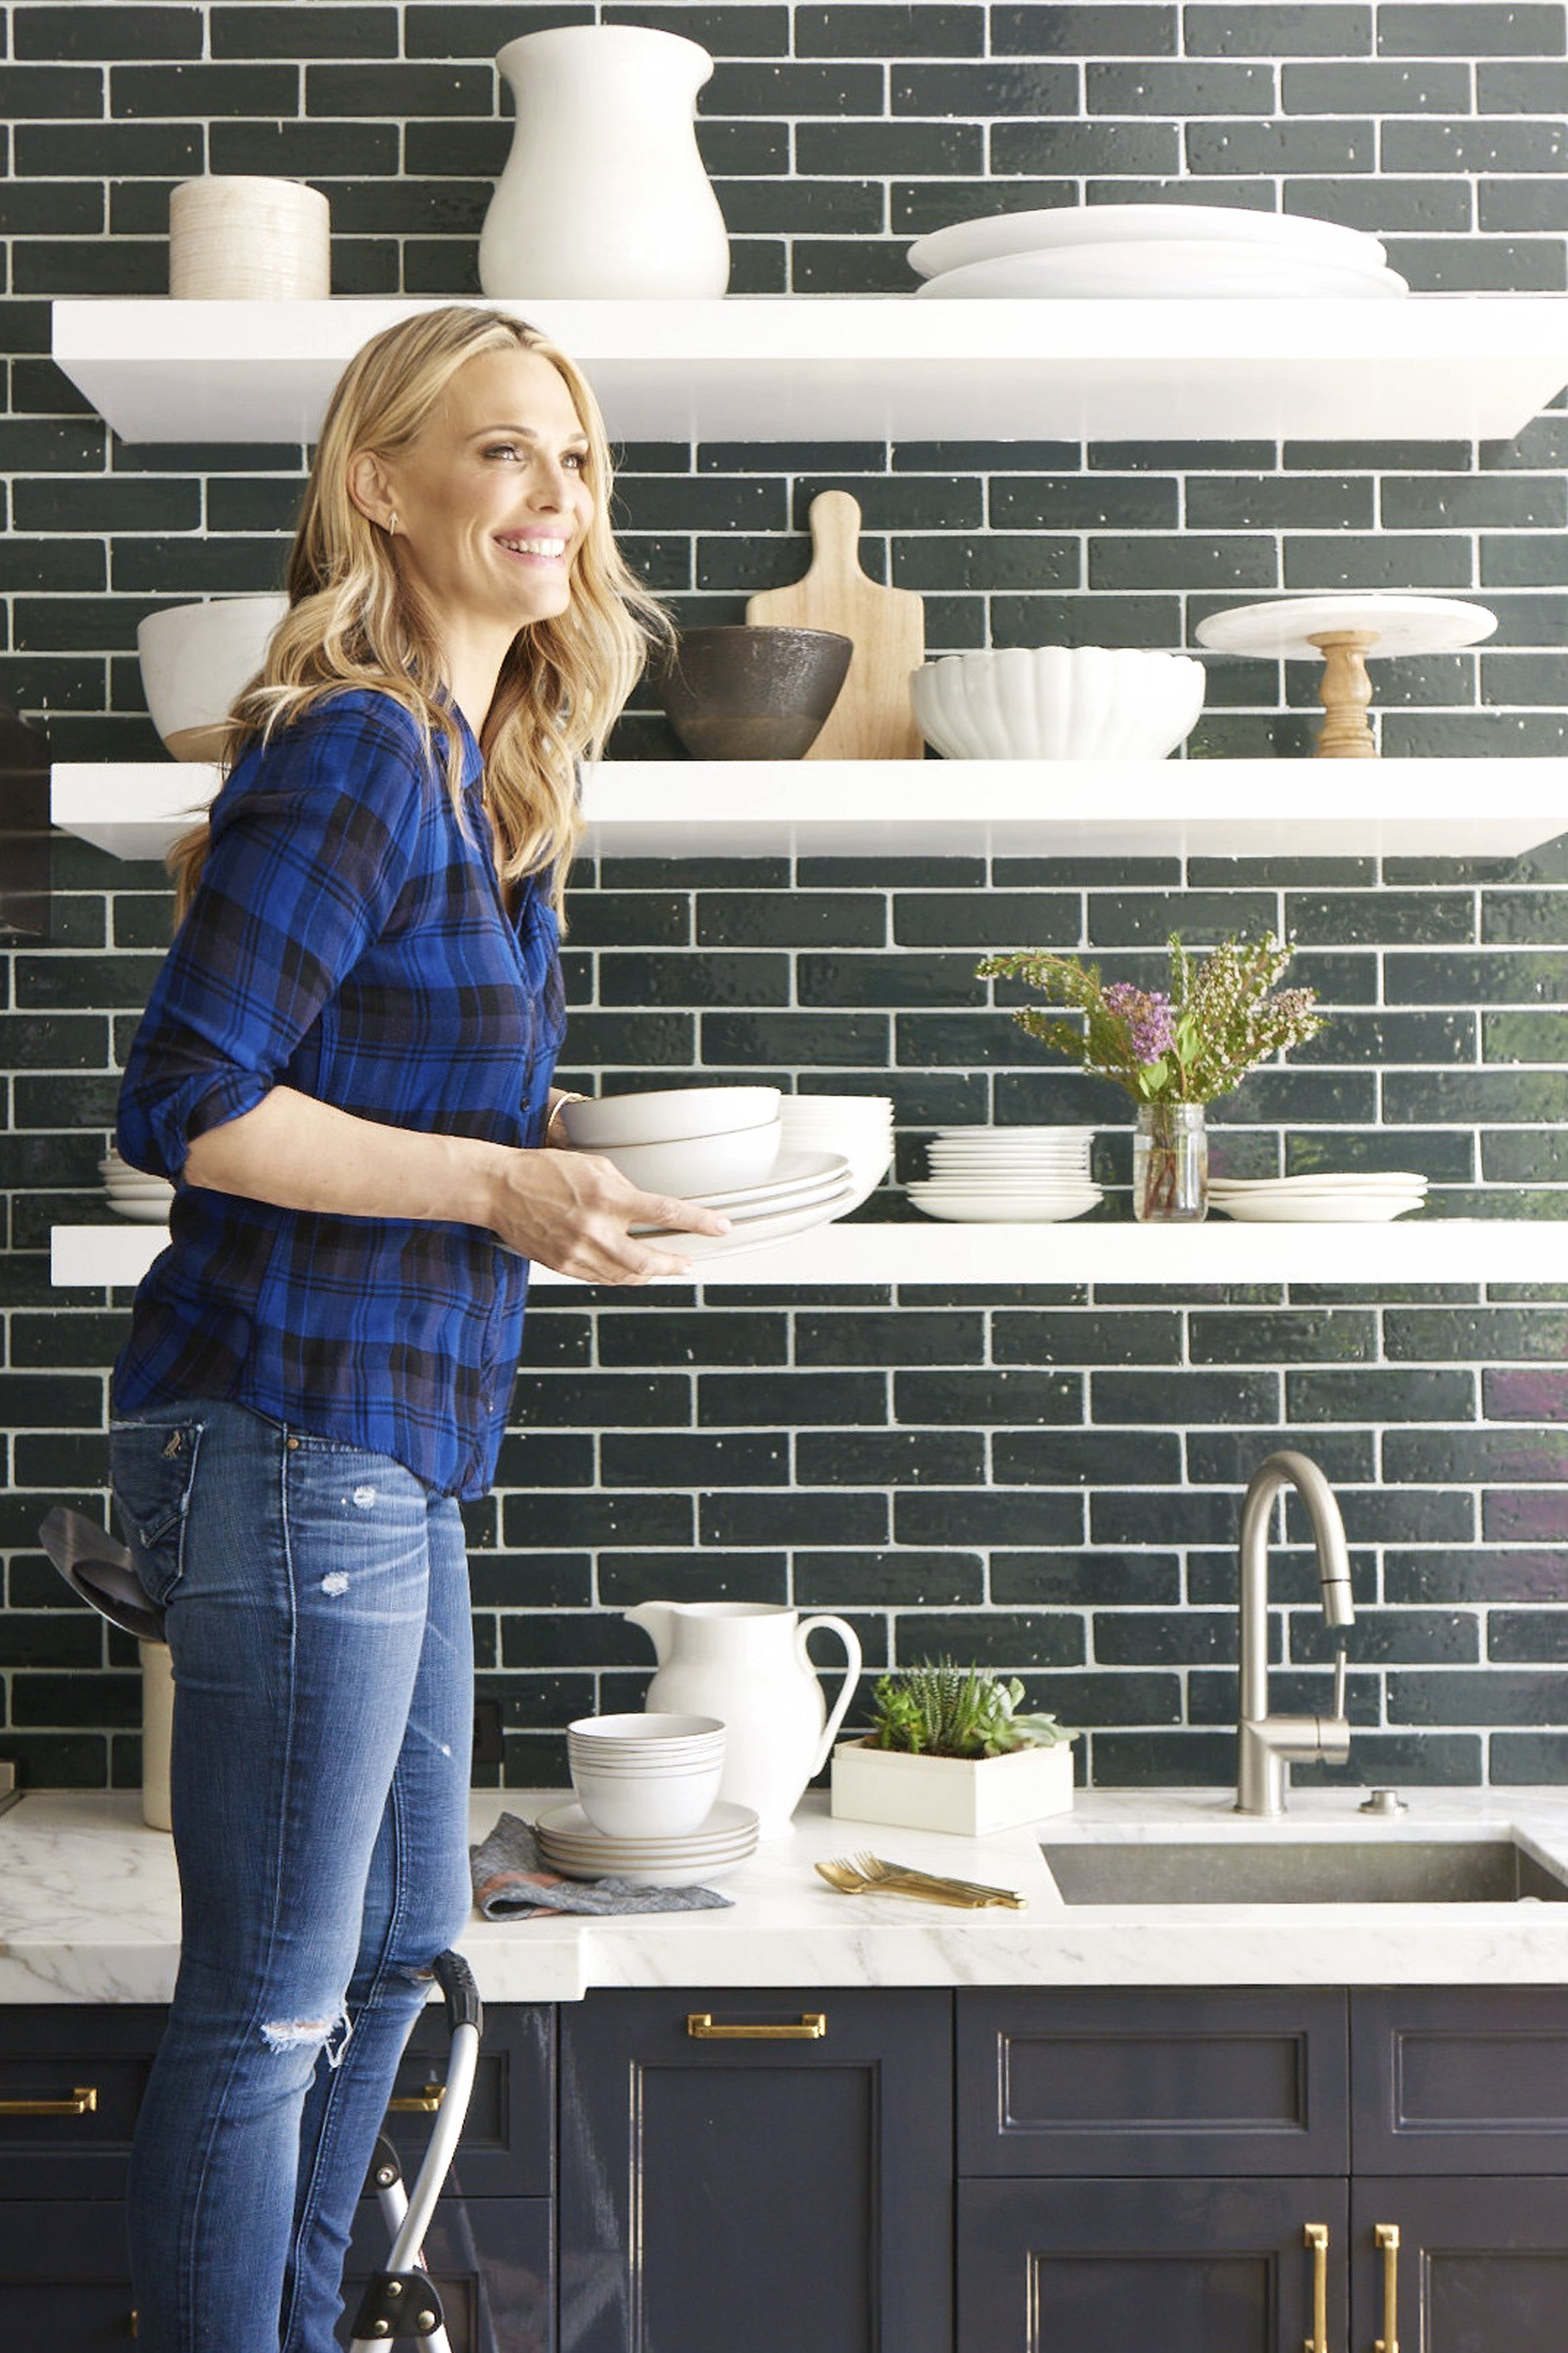 Molly Sims in kitchen